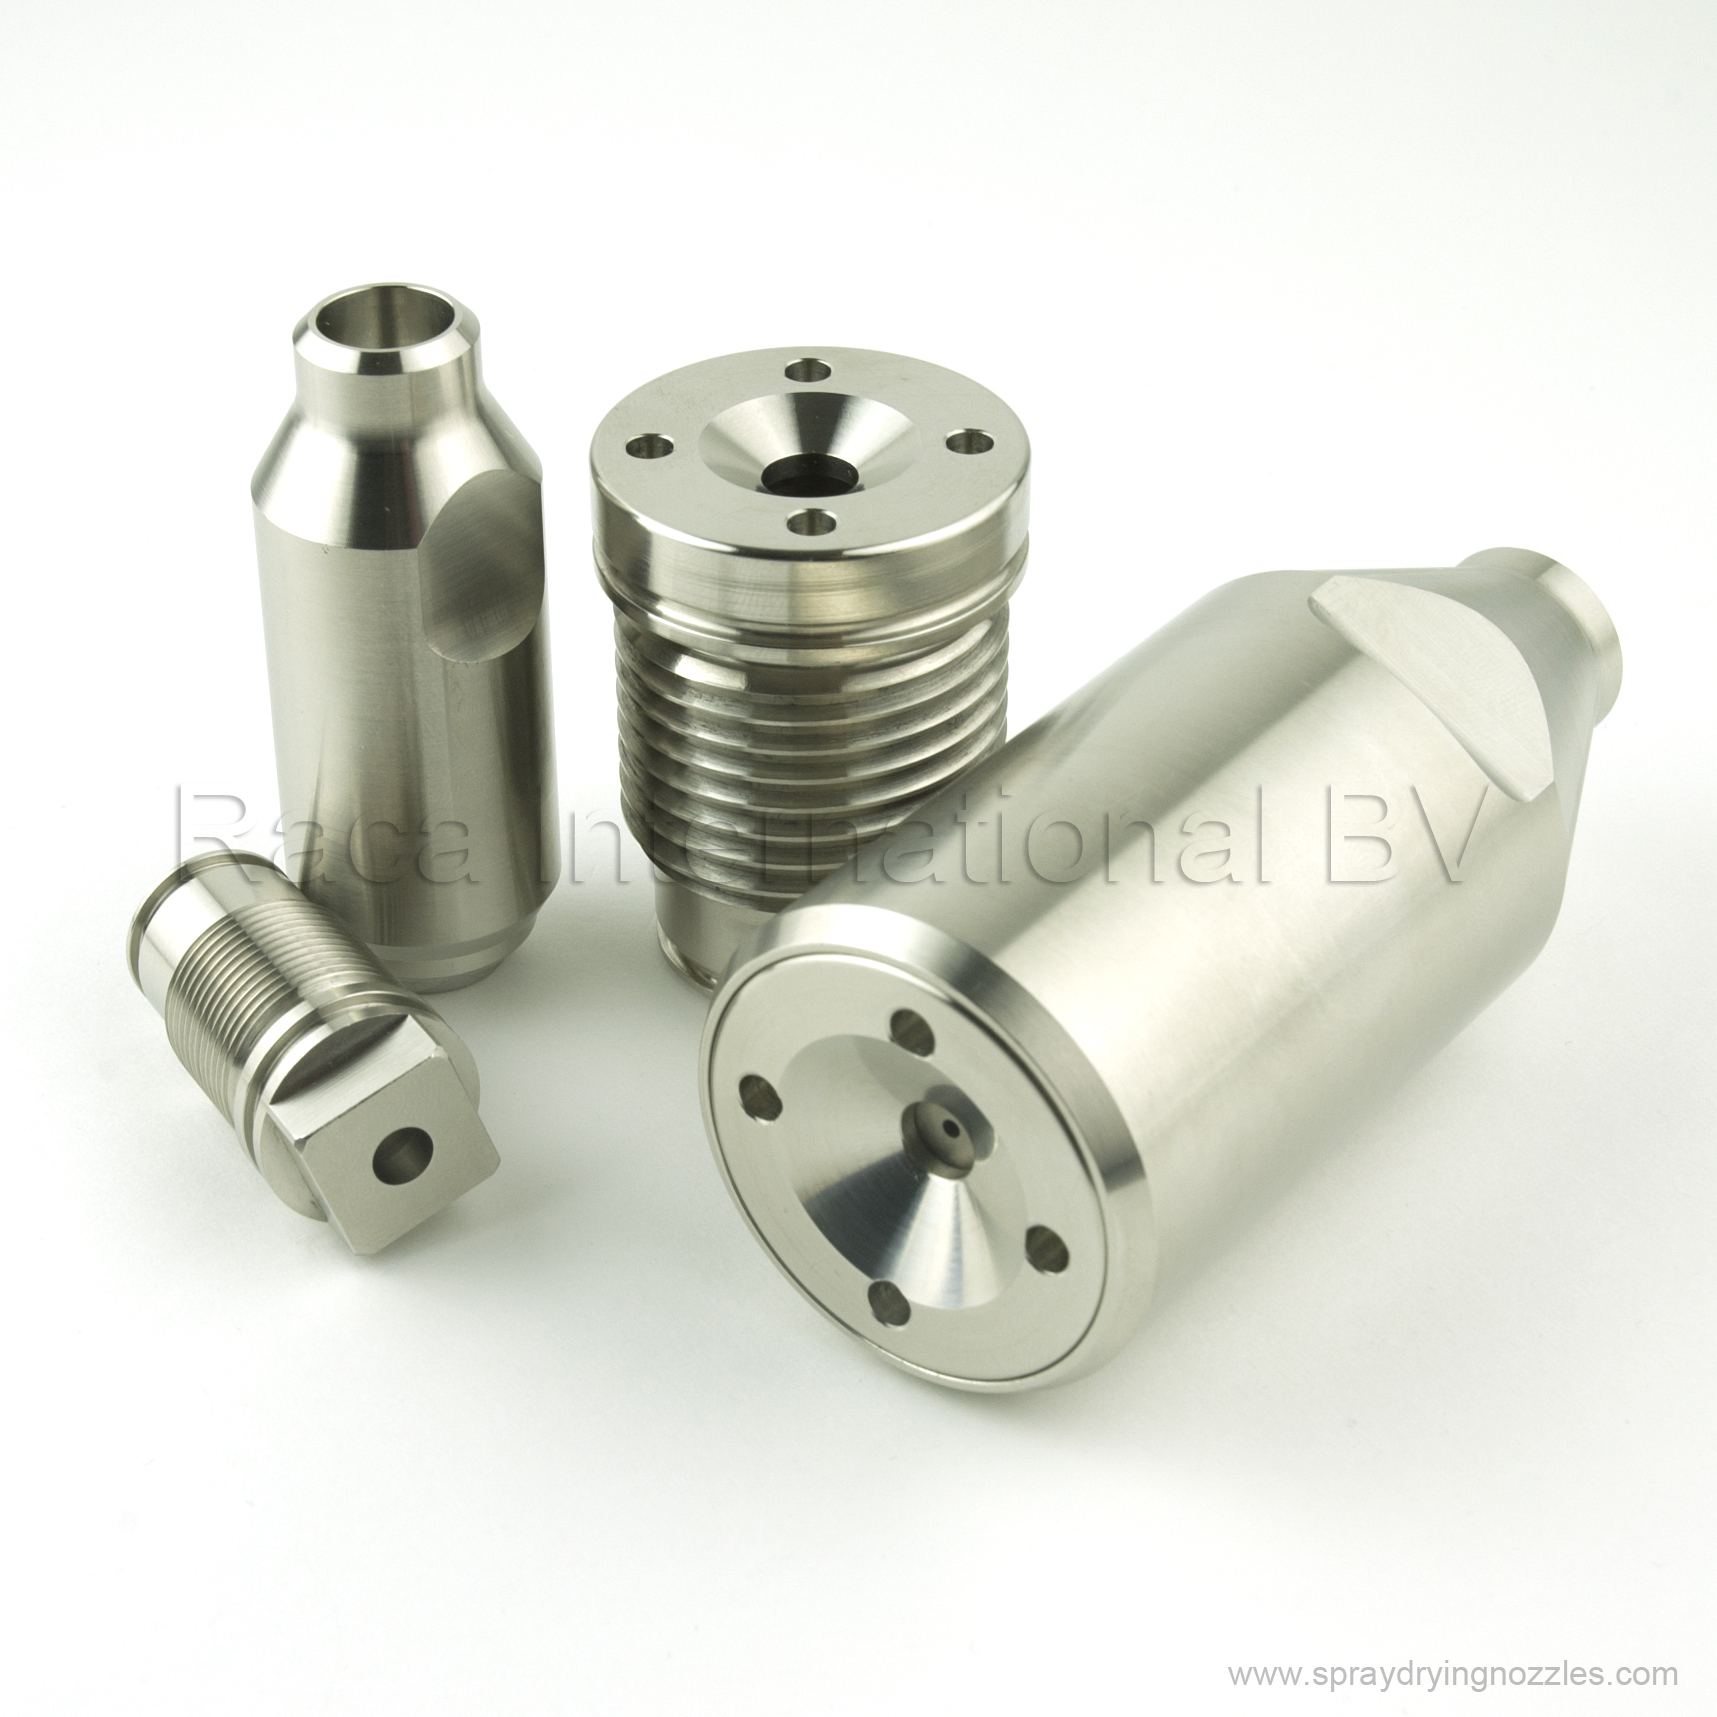 Spray drying nozzles bodies and adapters